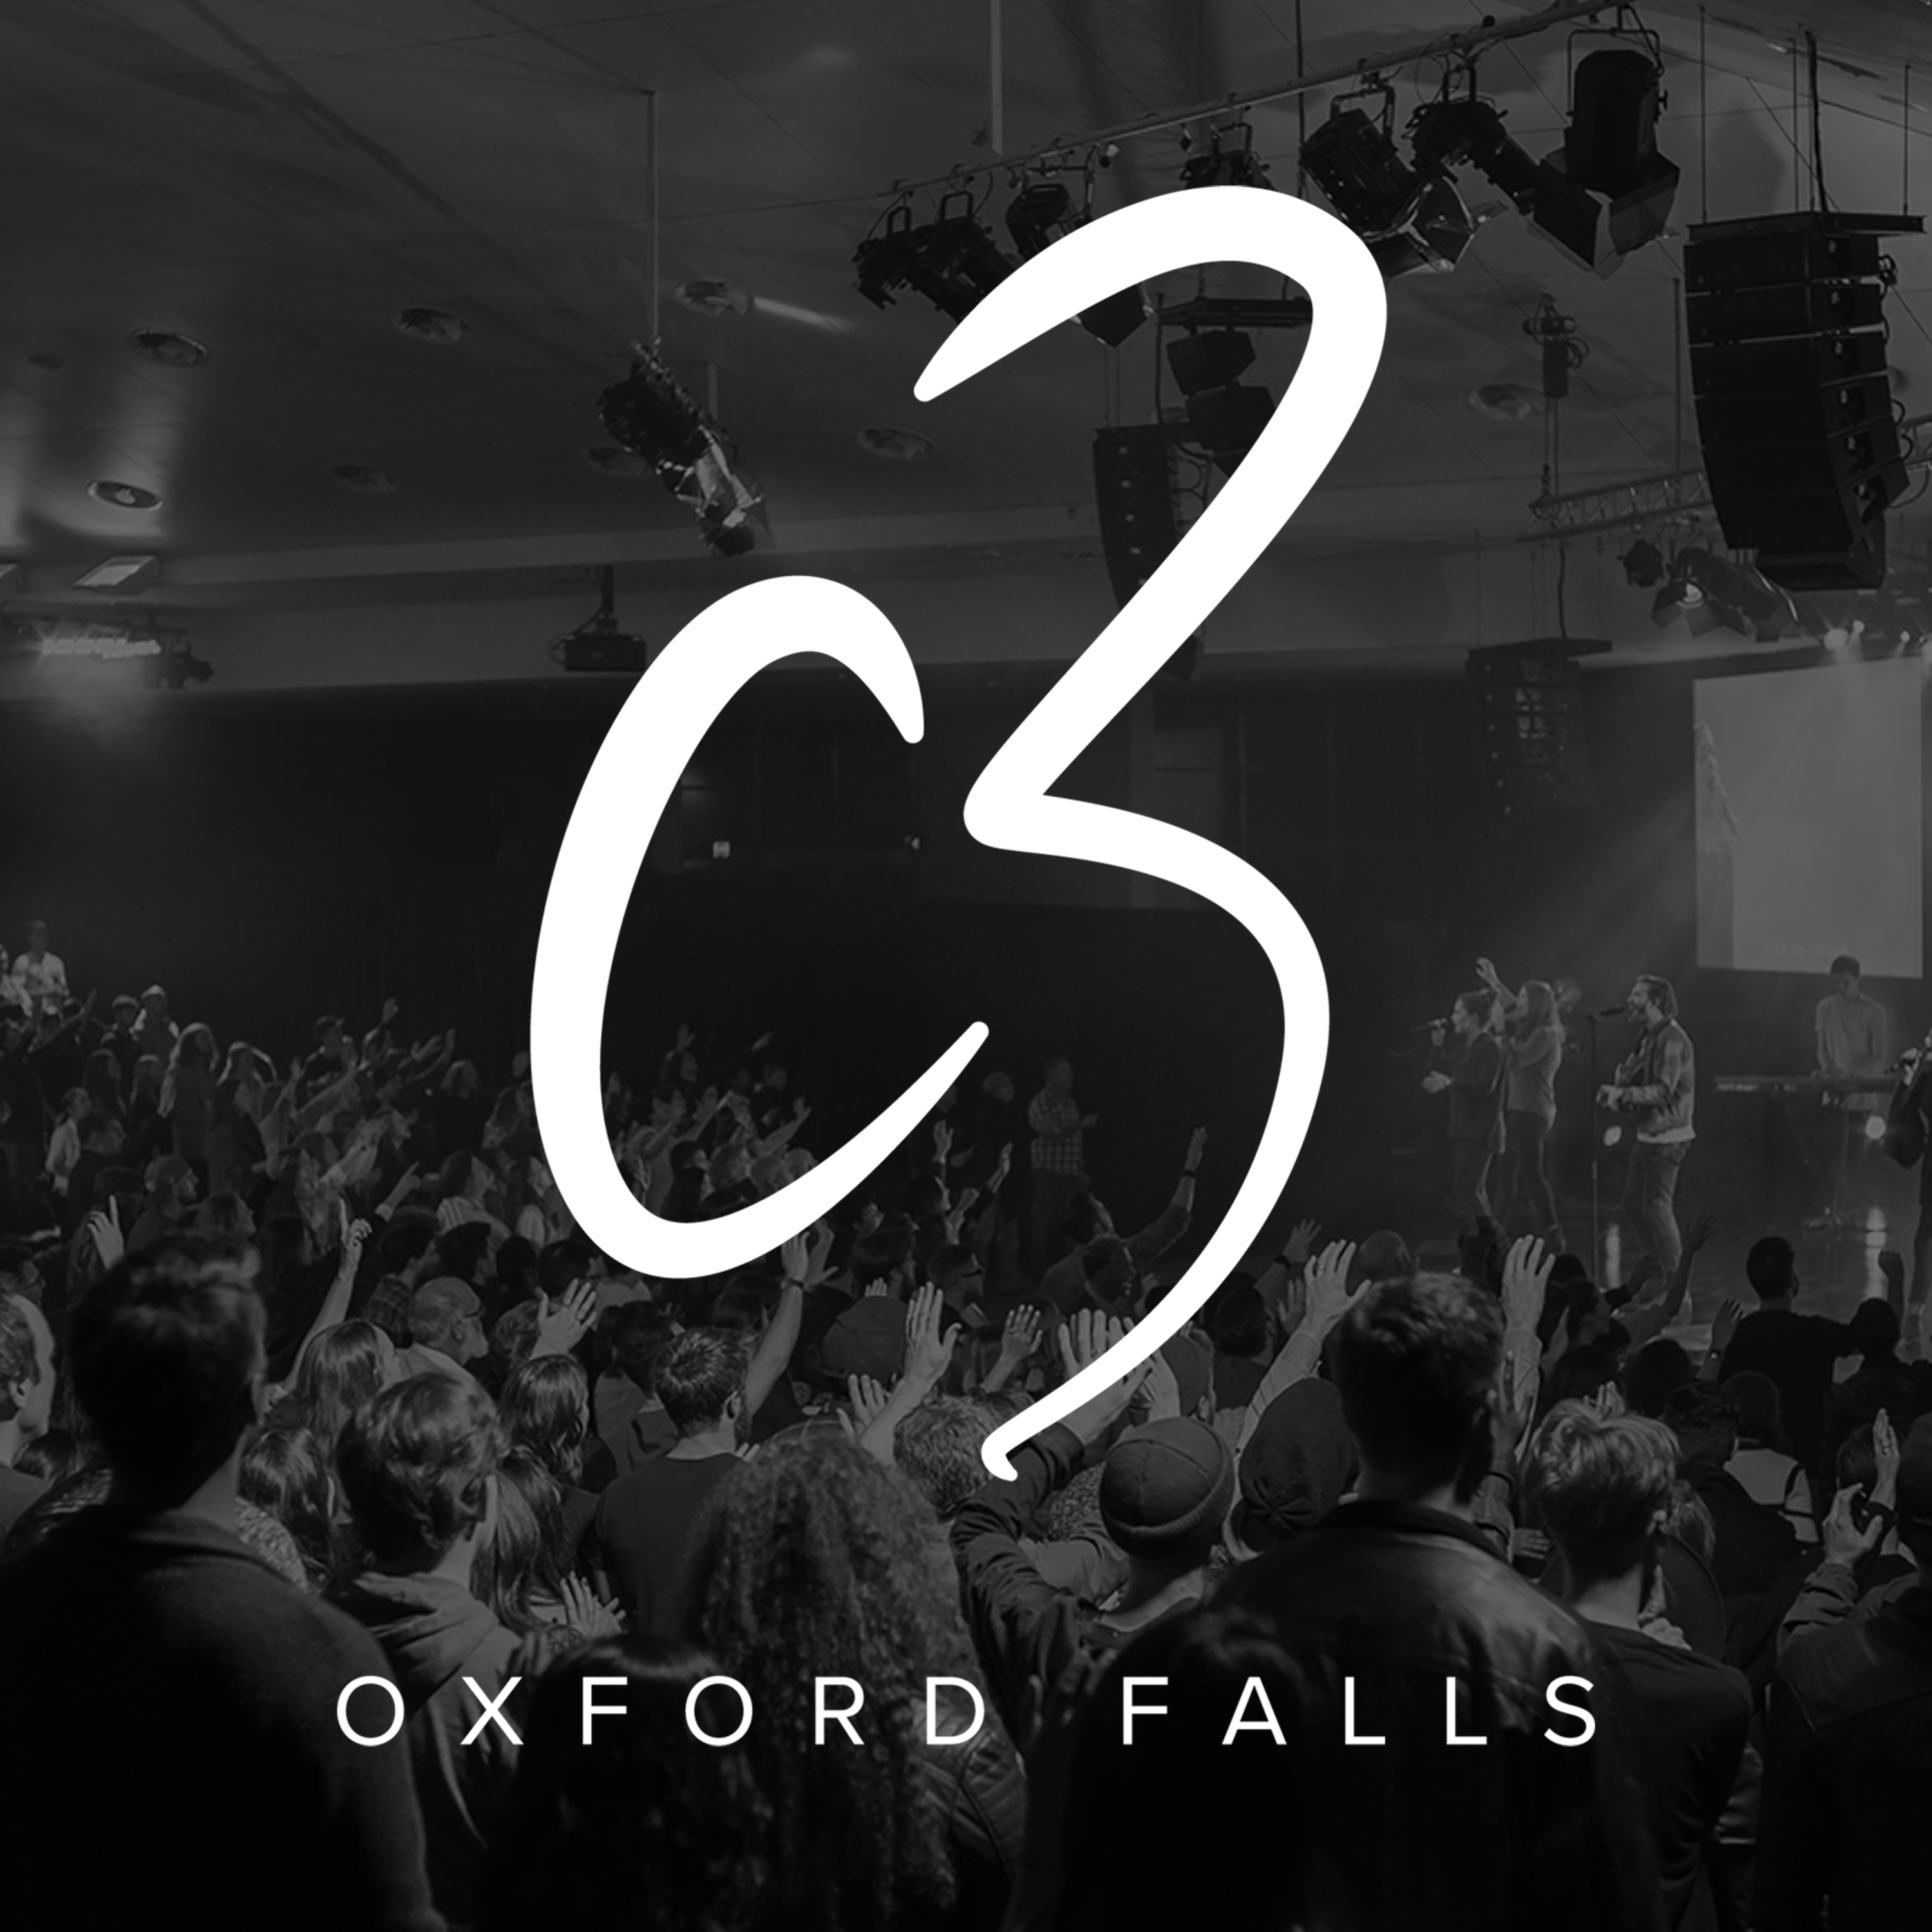 C3 Church Oxford Falls